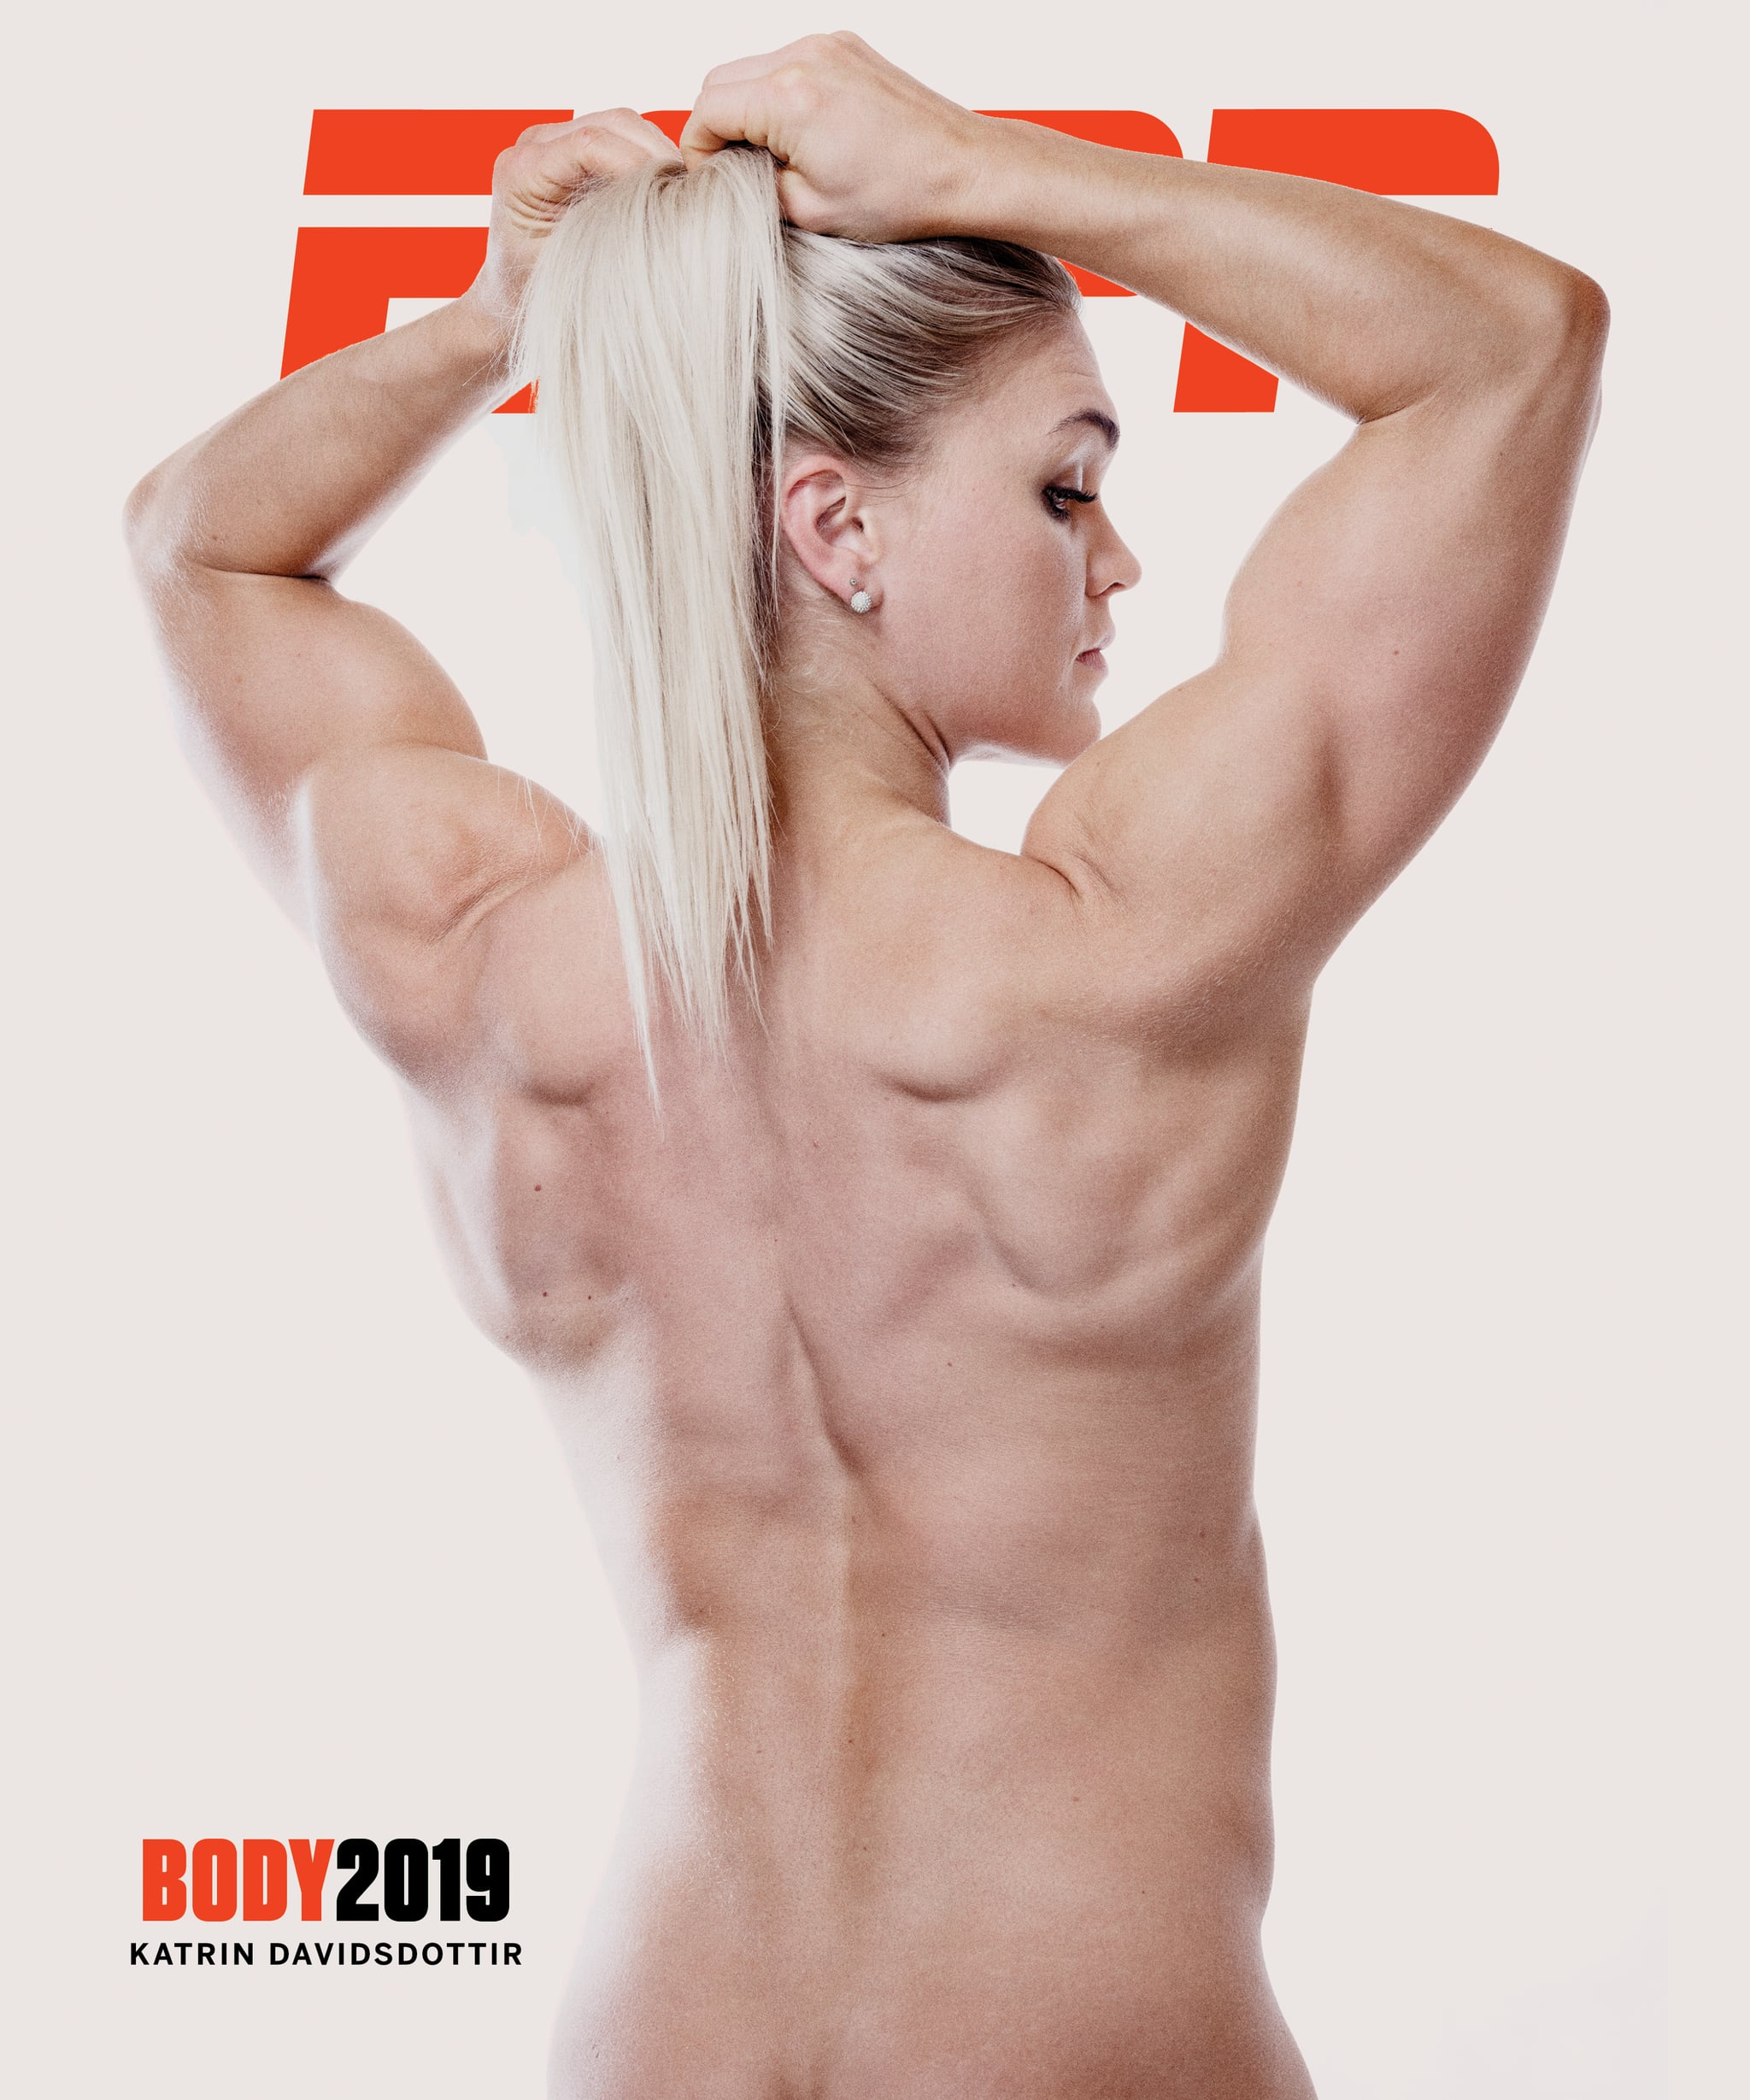 Naked athletic body Espn Body Issue 2019 Photos Of Athletes Baring It All Popsugar Fitness